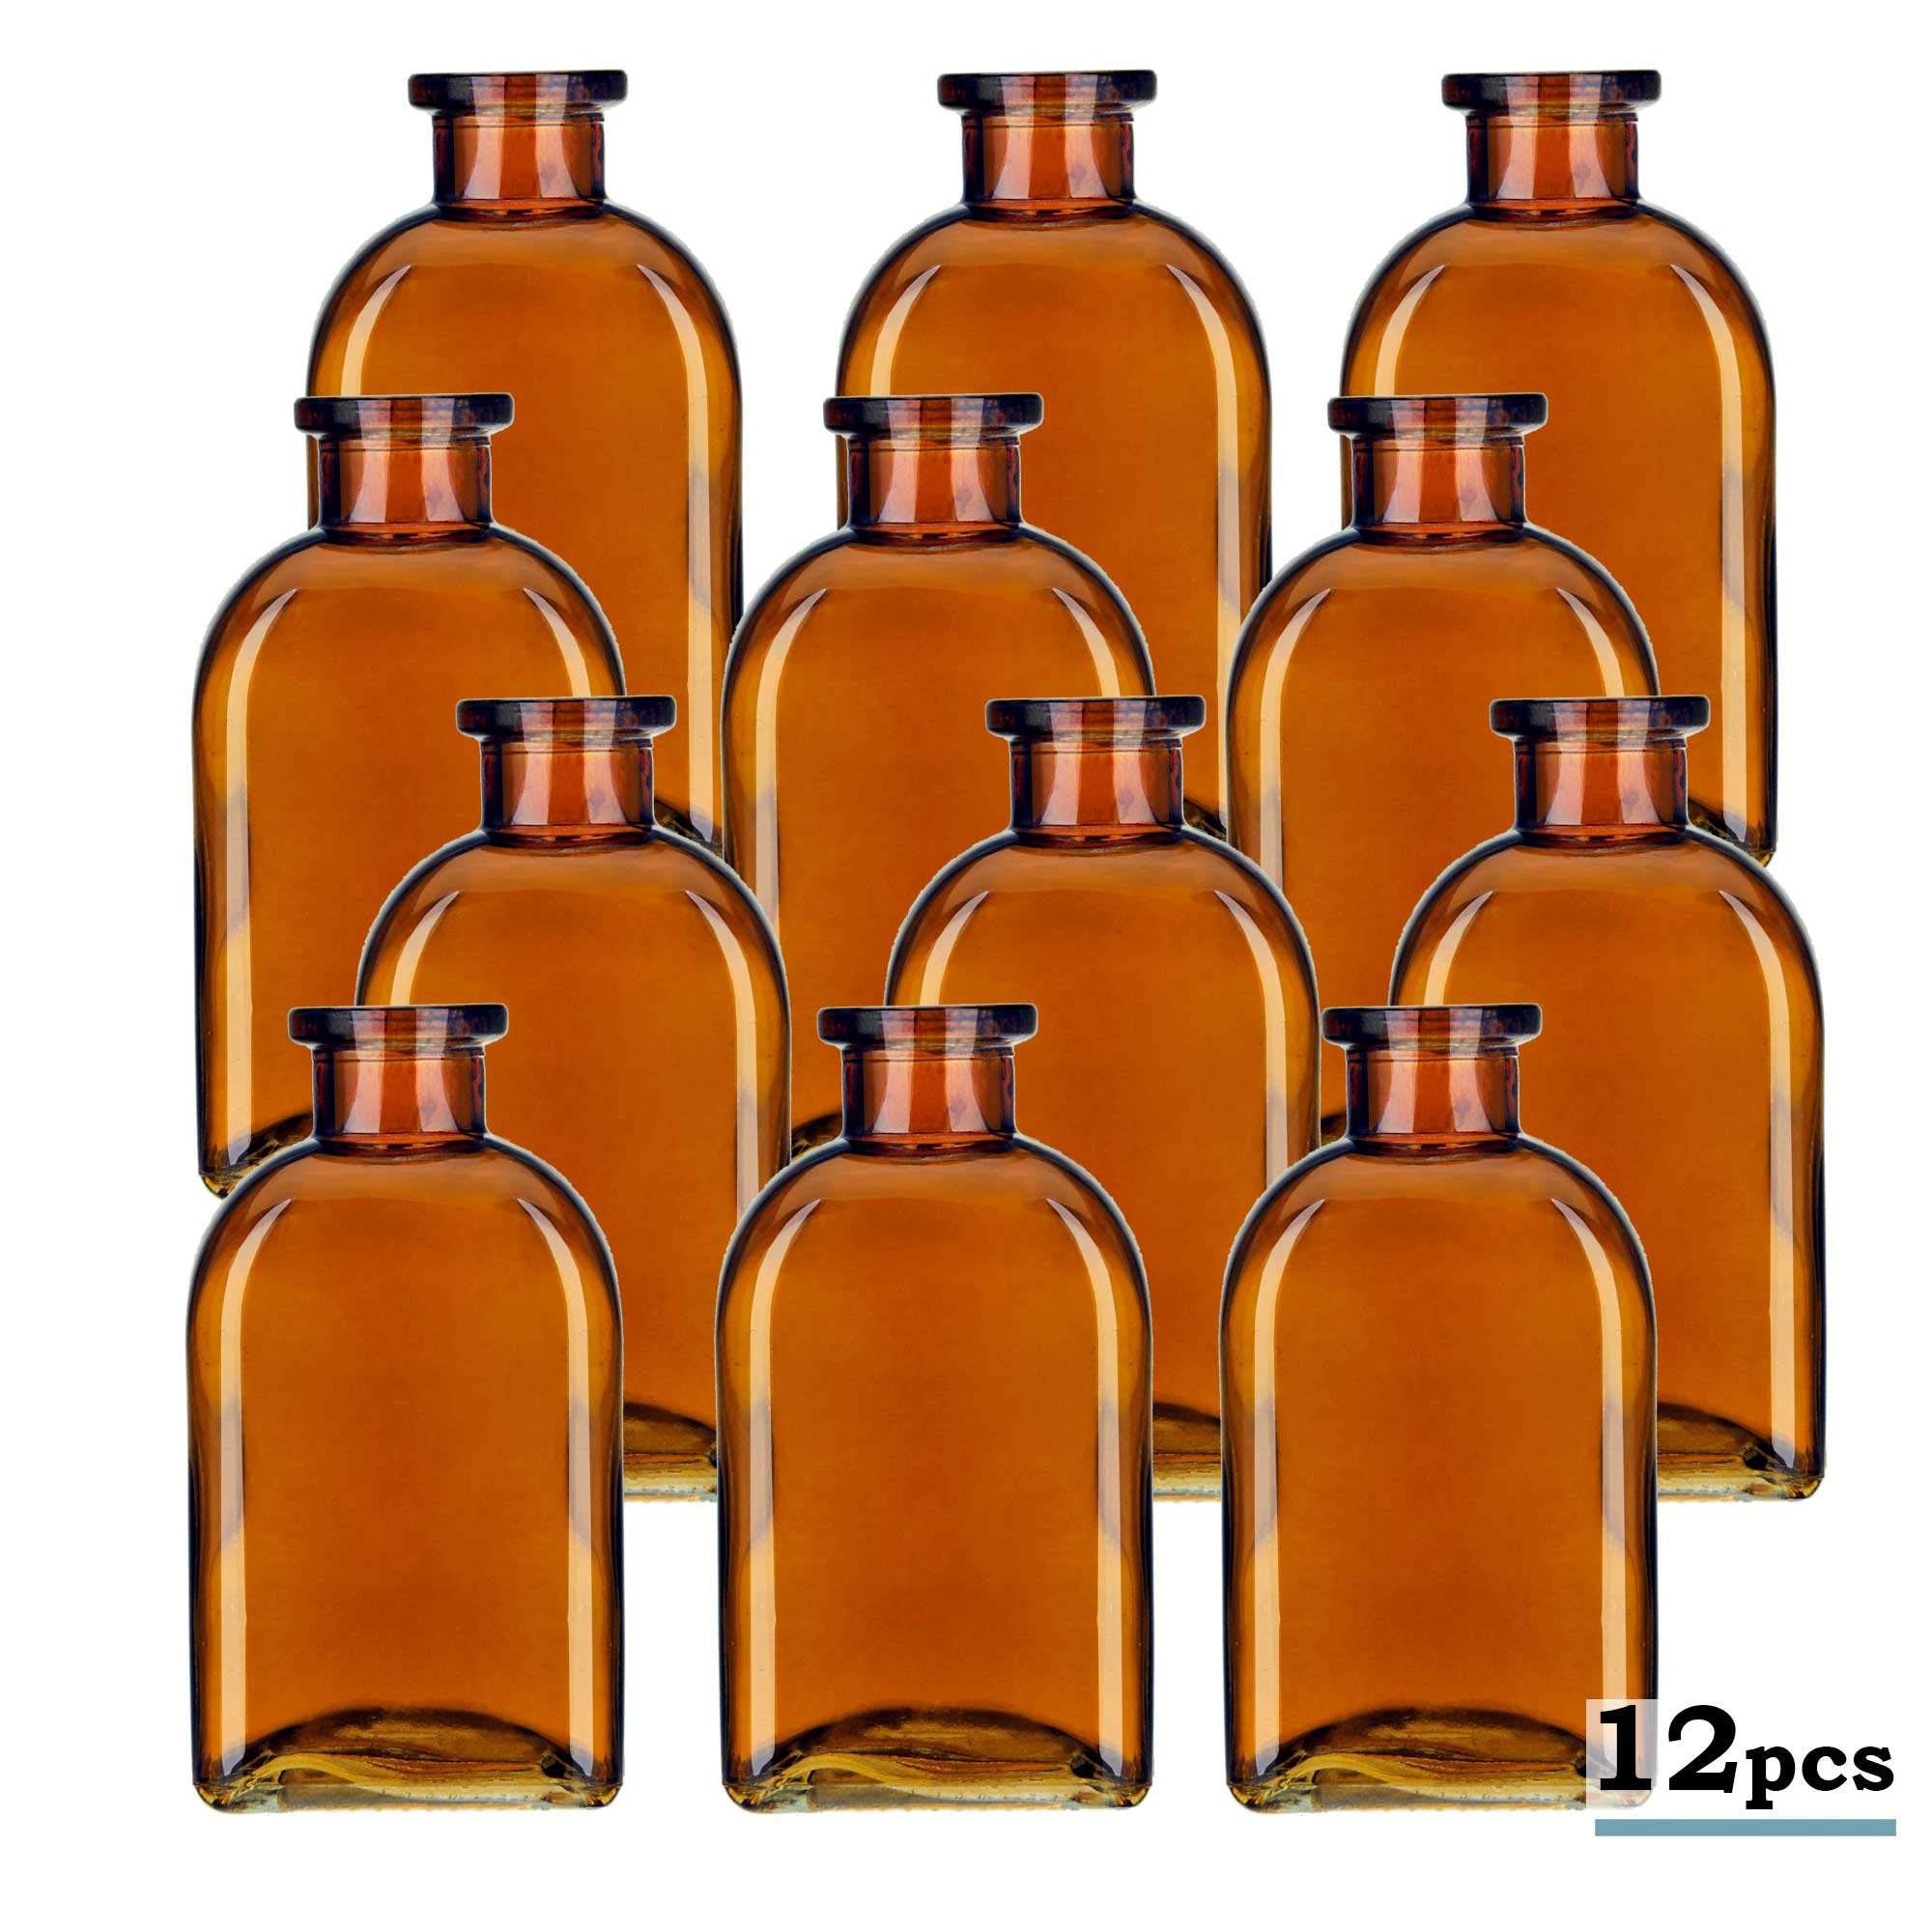 Glassnow C6054G48-N 12 Piece 8.5 oz Roma Glass Bottle Without Cork, Dark Amber